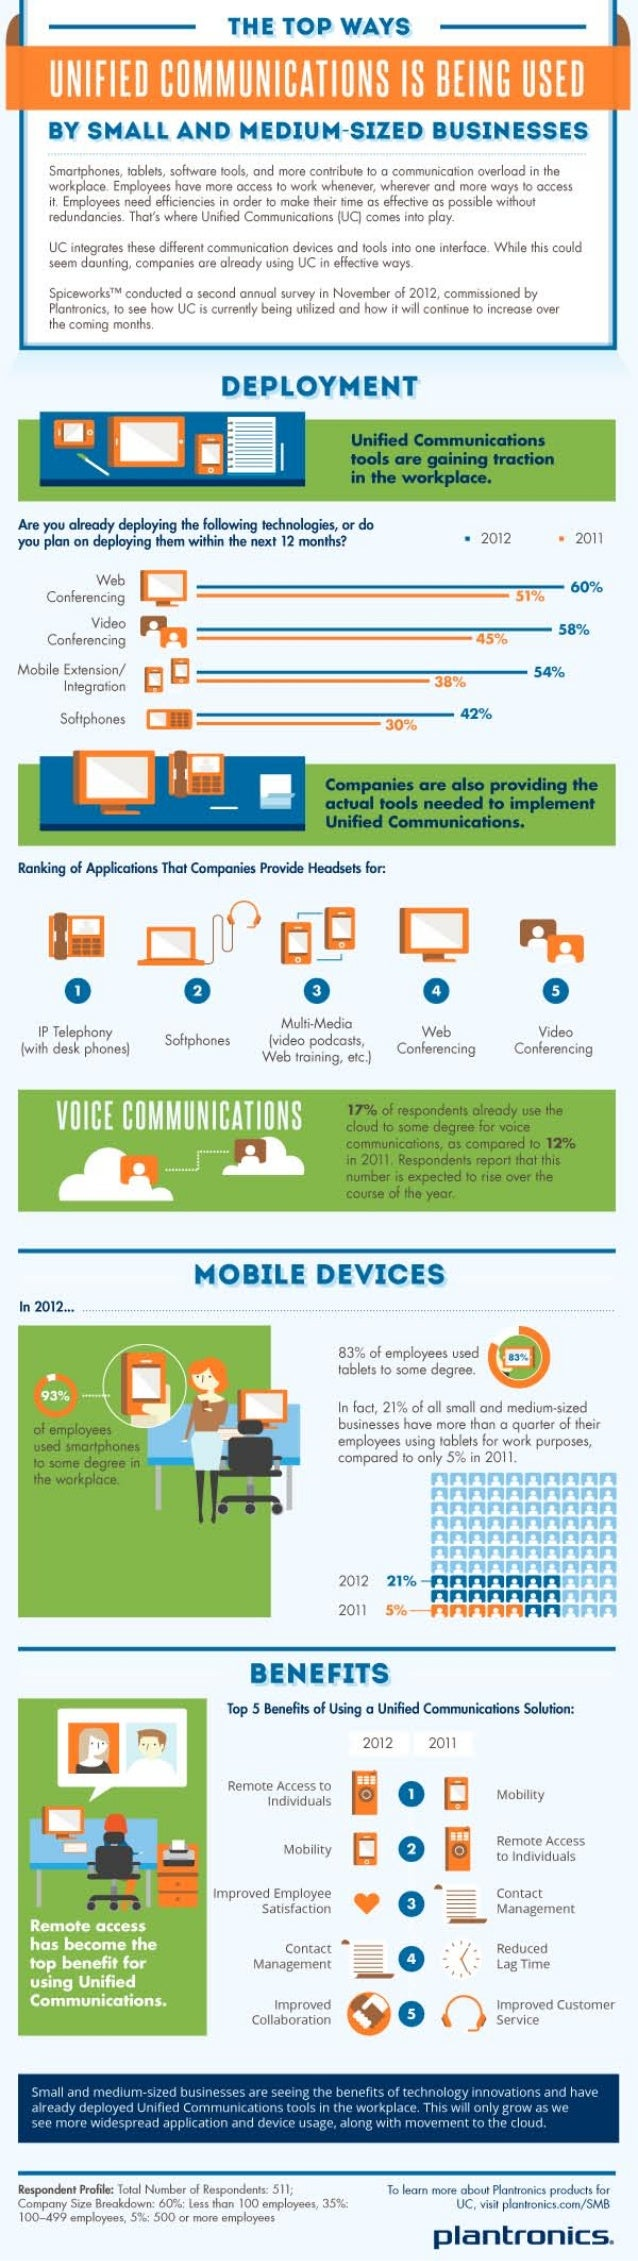 The Top Ways Unified Communications is Being Used